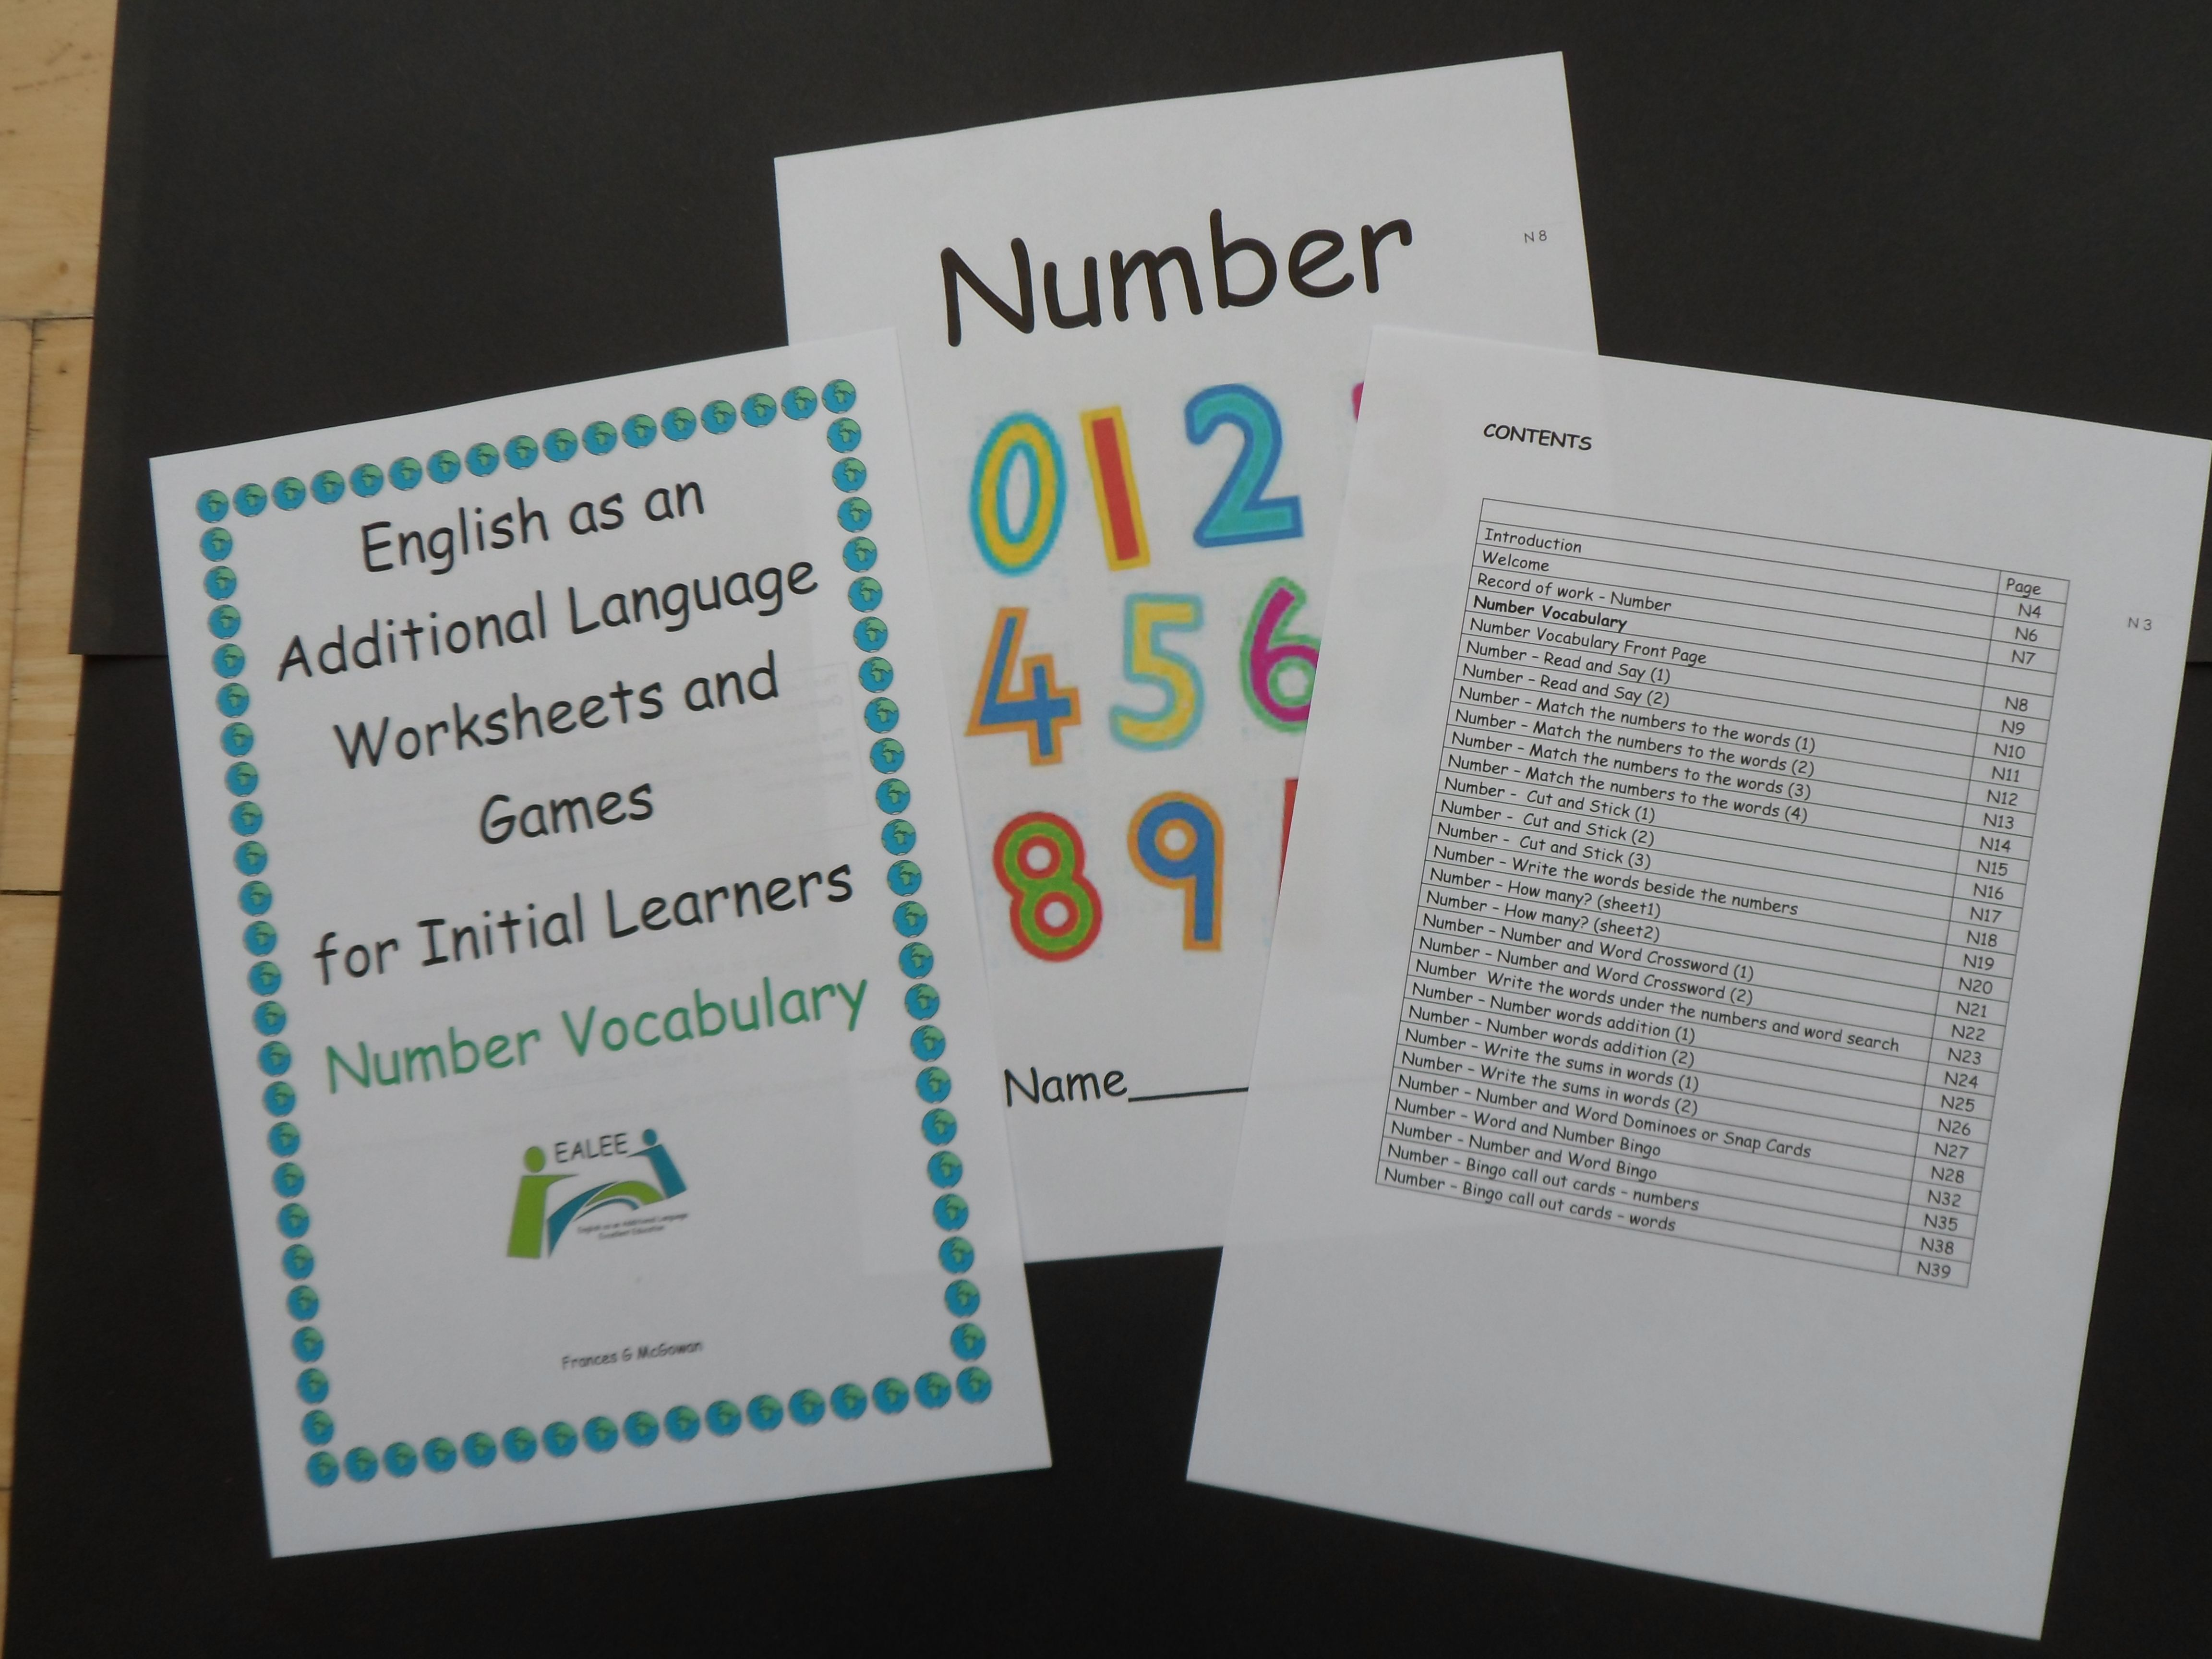 This Is Booklet 3 Called Eal Worksheets And Games For